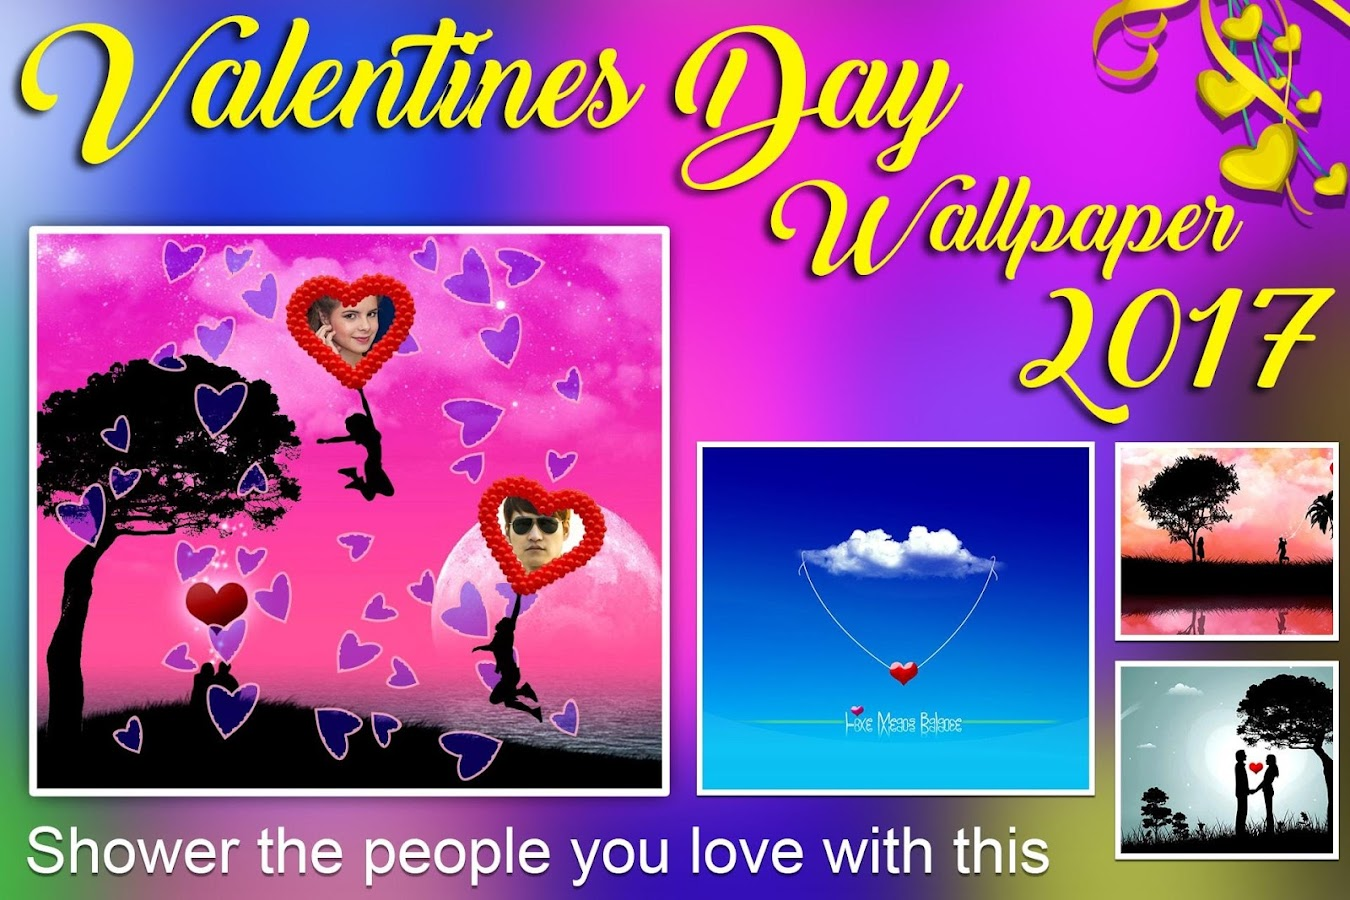 Valentines Day Wallpaper 2017 12 Apk Download Android